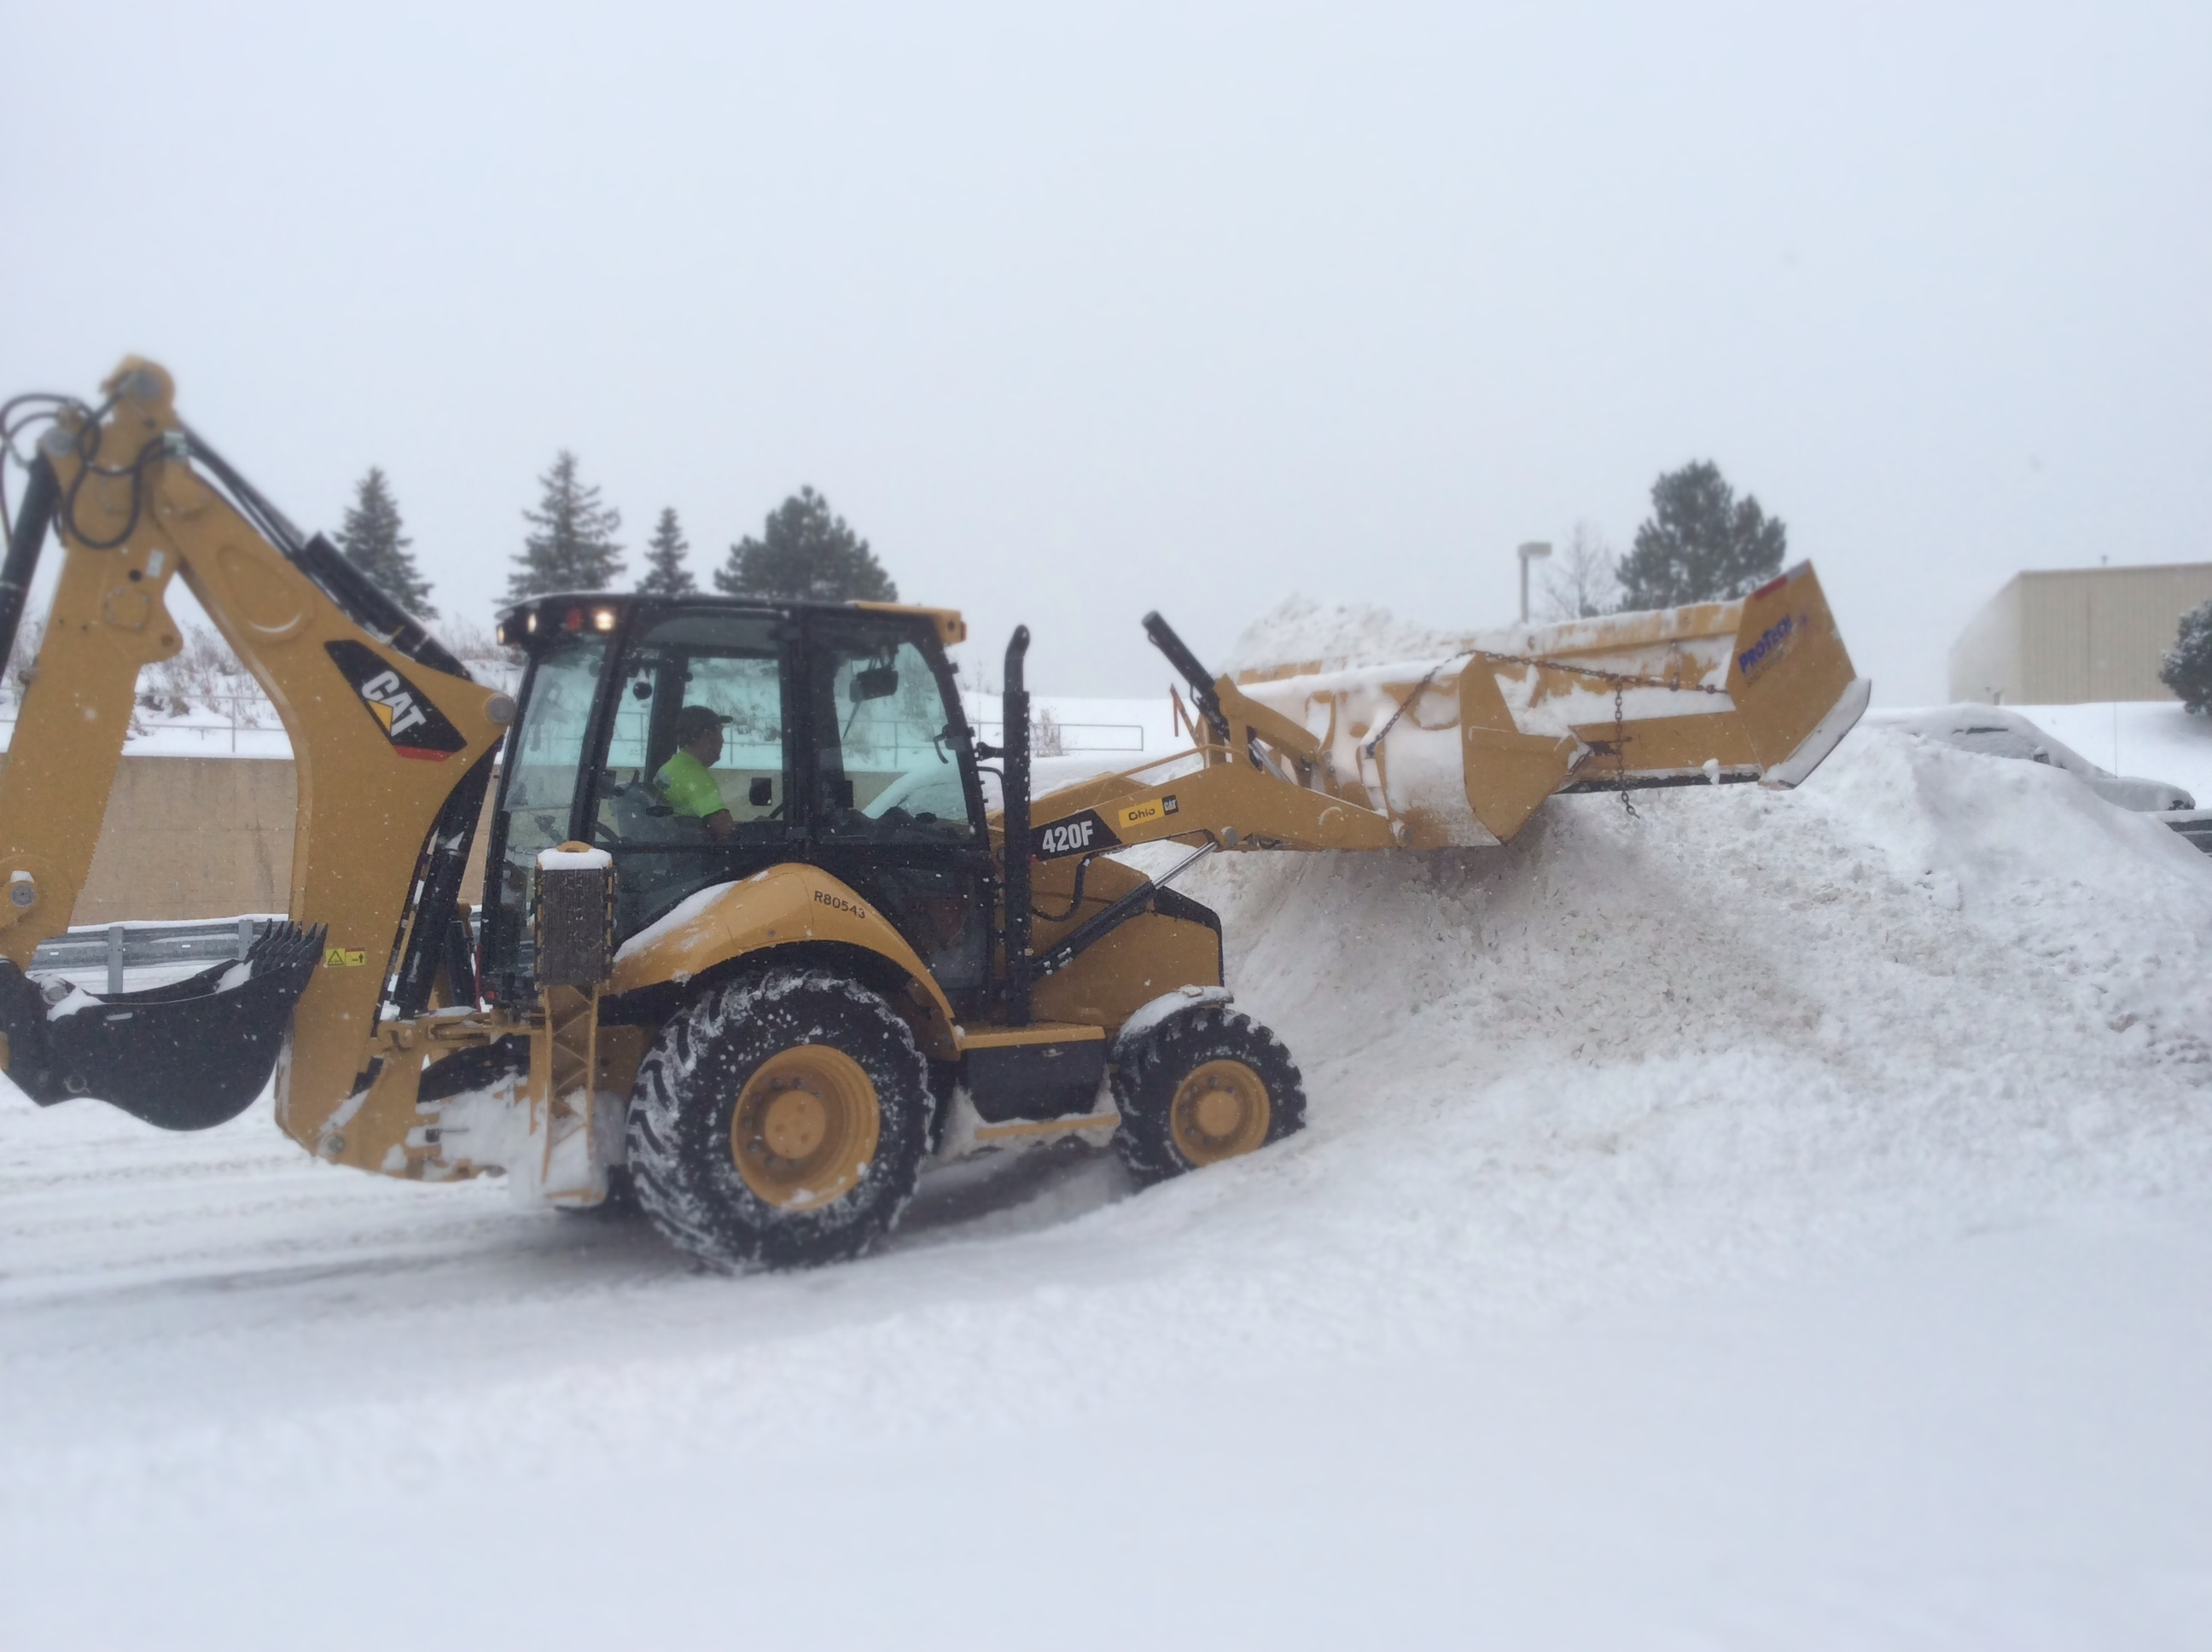 A Great Way to Keep Your Construction Business Busy This Winter: Snow Removal